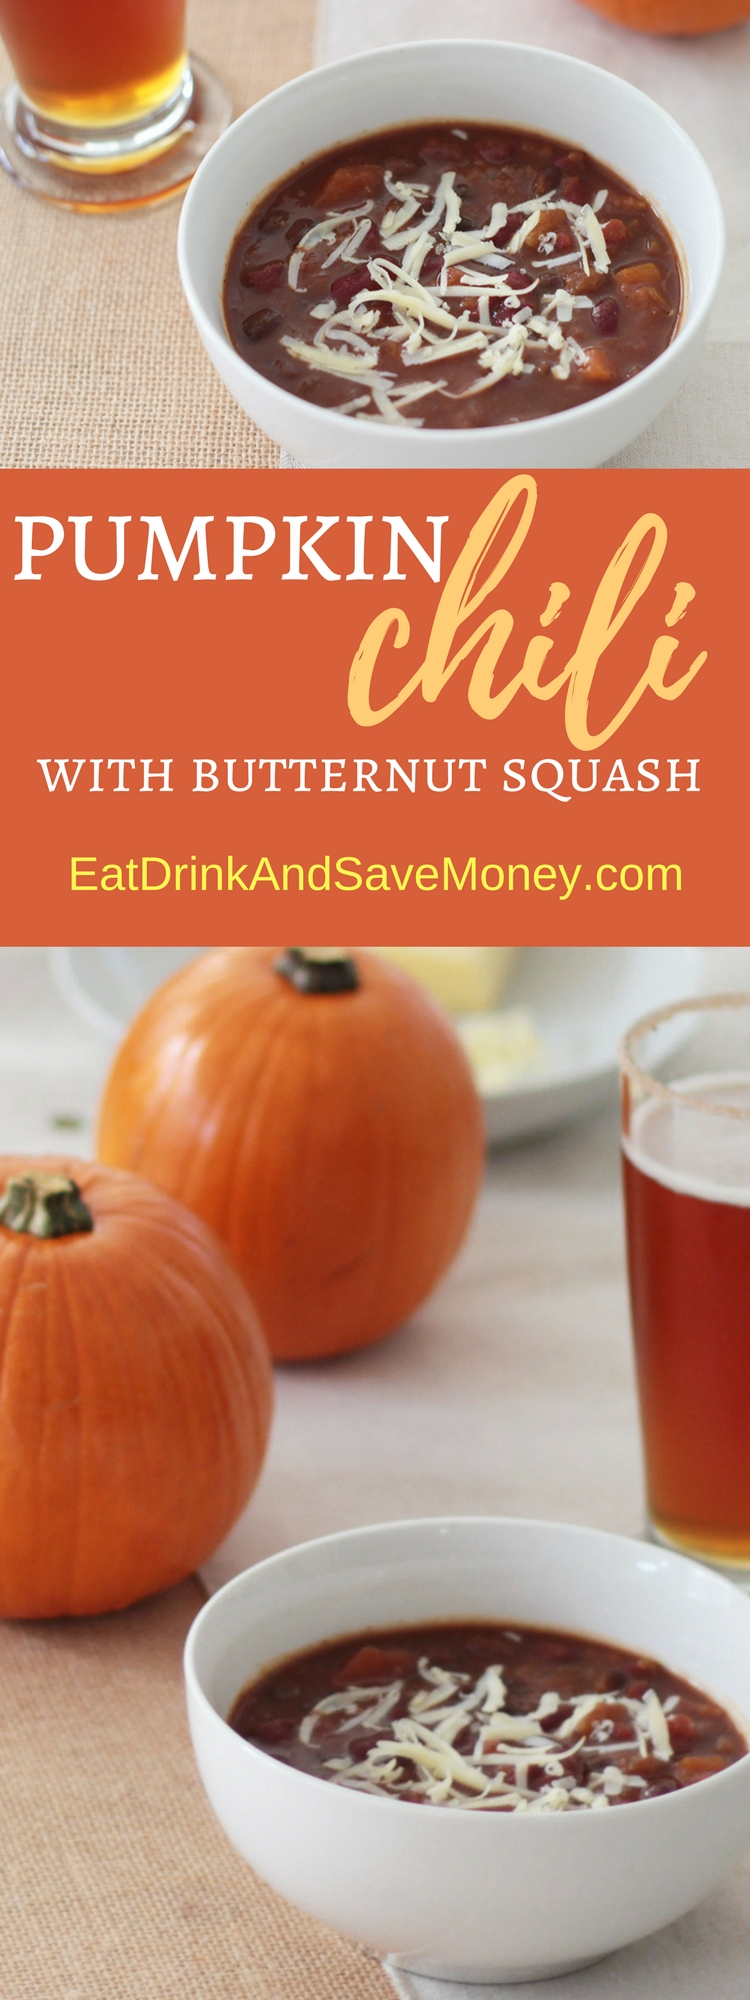 Check out this simple crock pot recipe for pumpkin chili with butternut squash. It's an easy soup recipe that is perfect for fall entertaining. It's a great fall recipe_ slow cooker recipe.